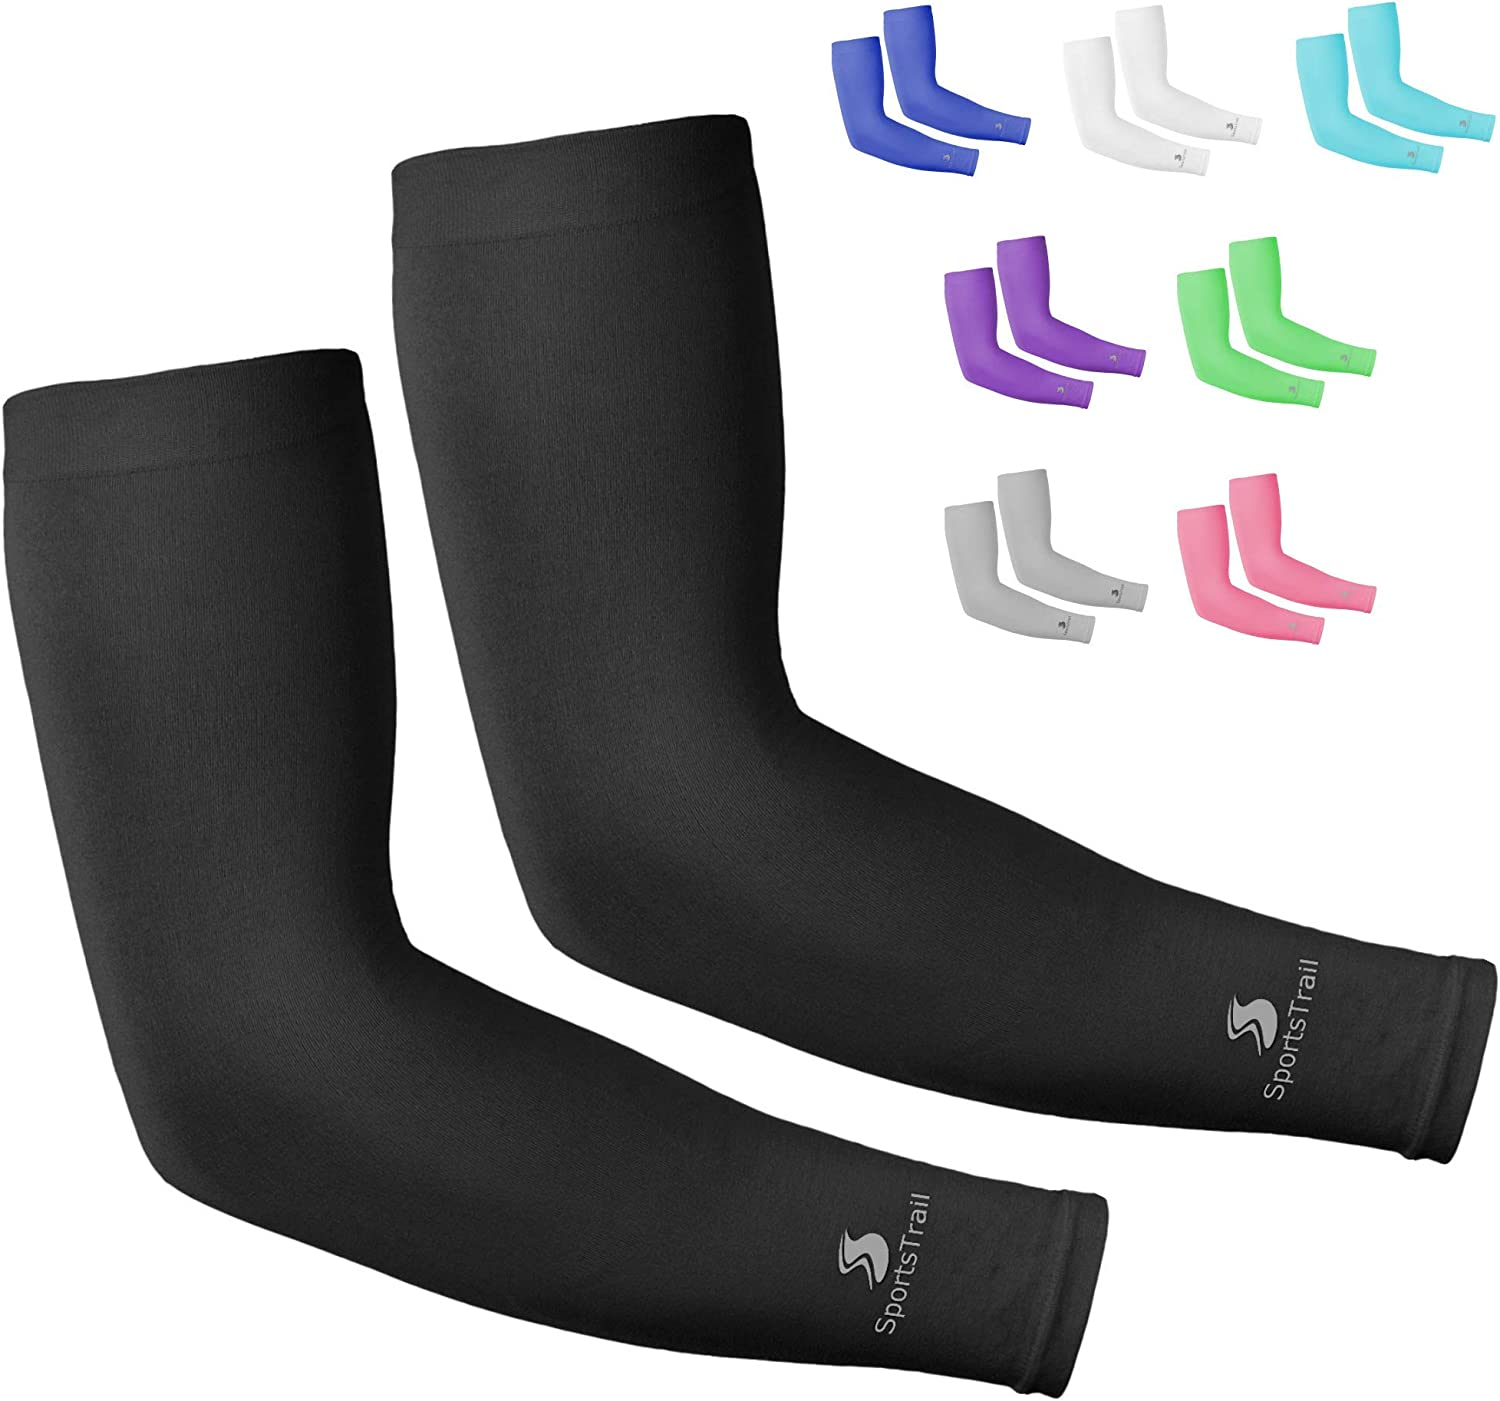 Cooling Japan Maker New Arm Sleeves for Men Women UV High material Protective Tatto 50 UPF